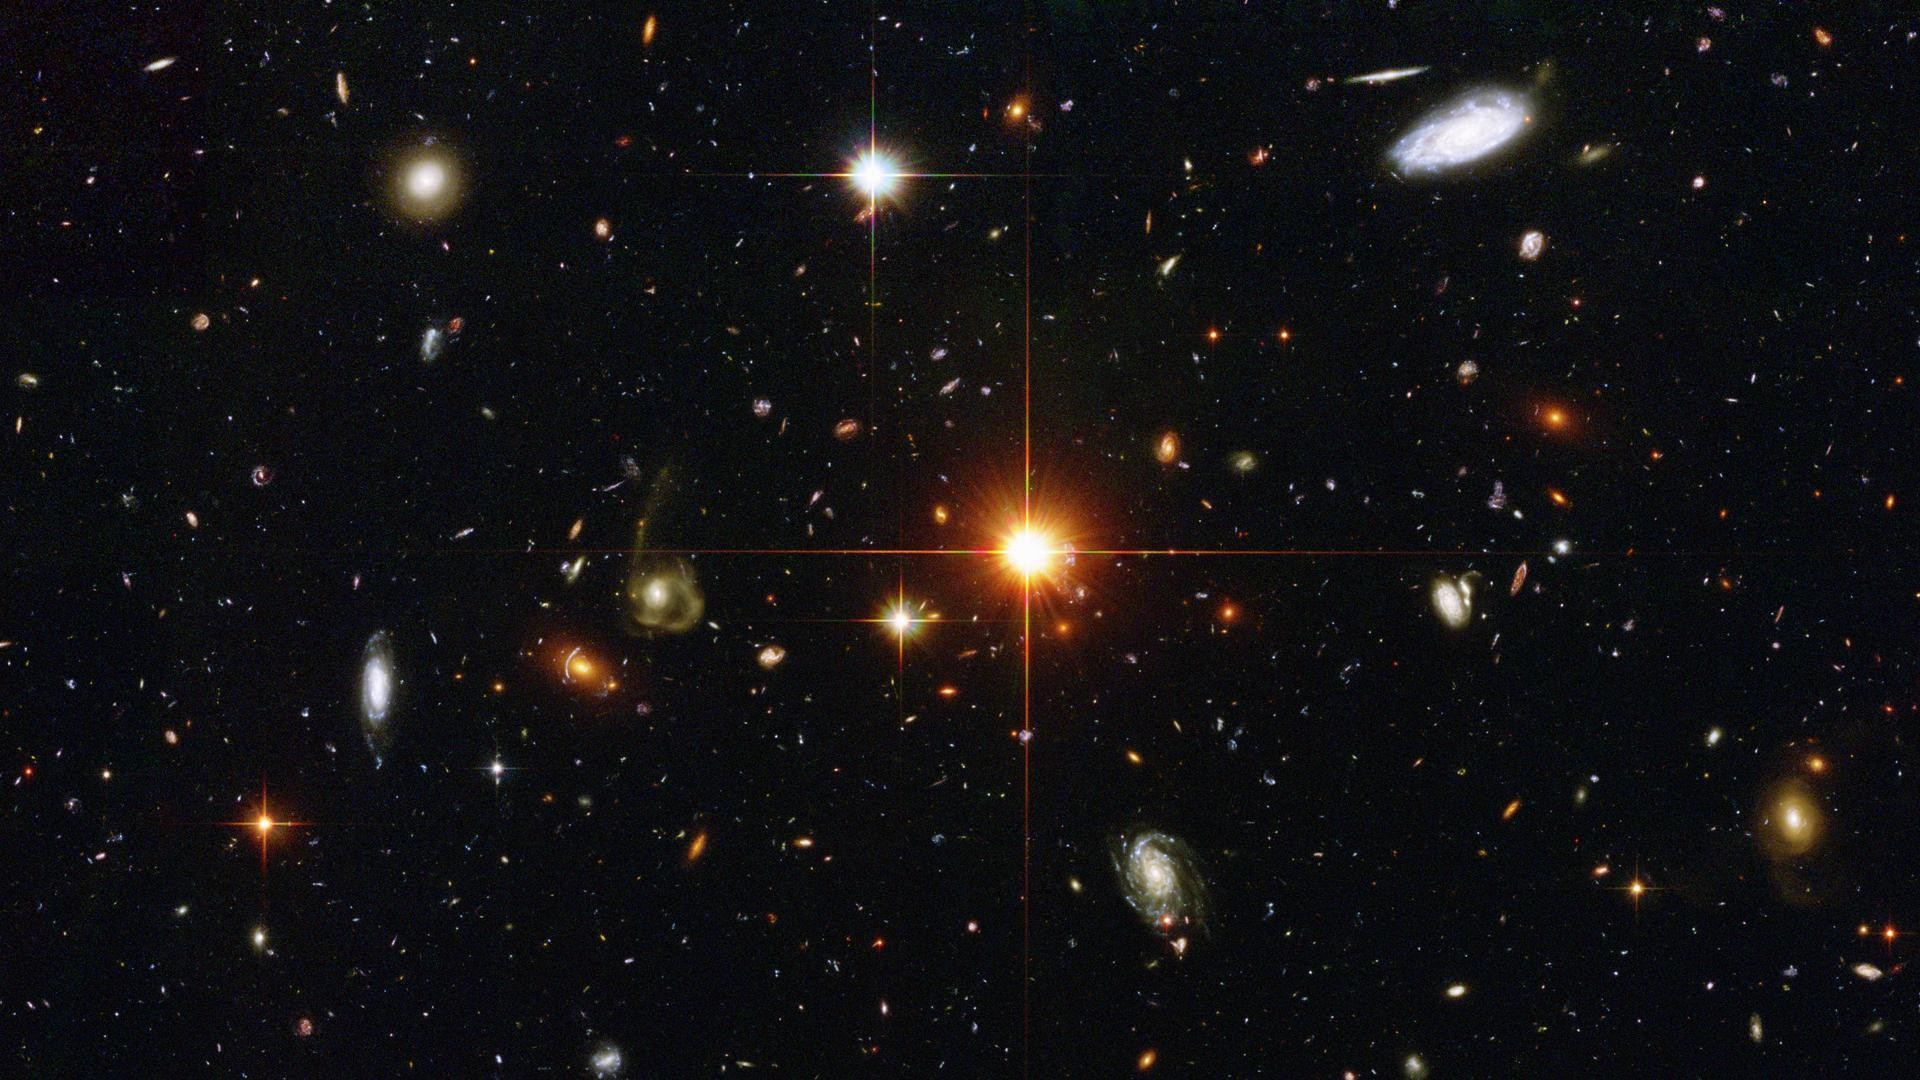 1920x1080 2. hubble-deep-field-wallpaper-HD2-600x338